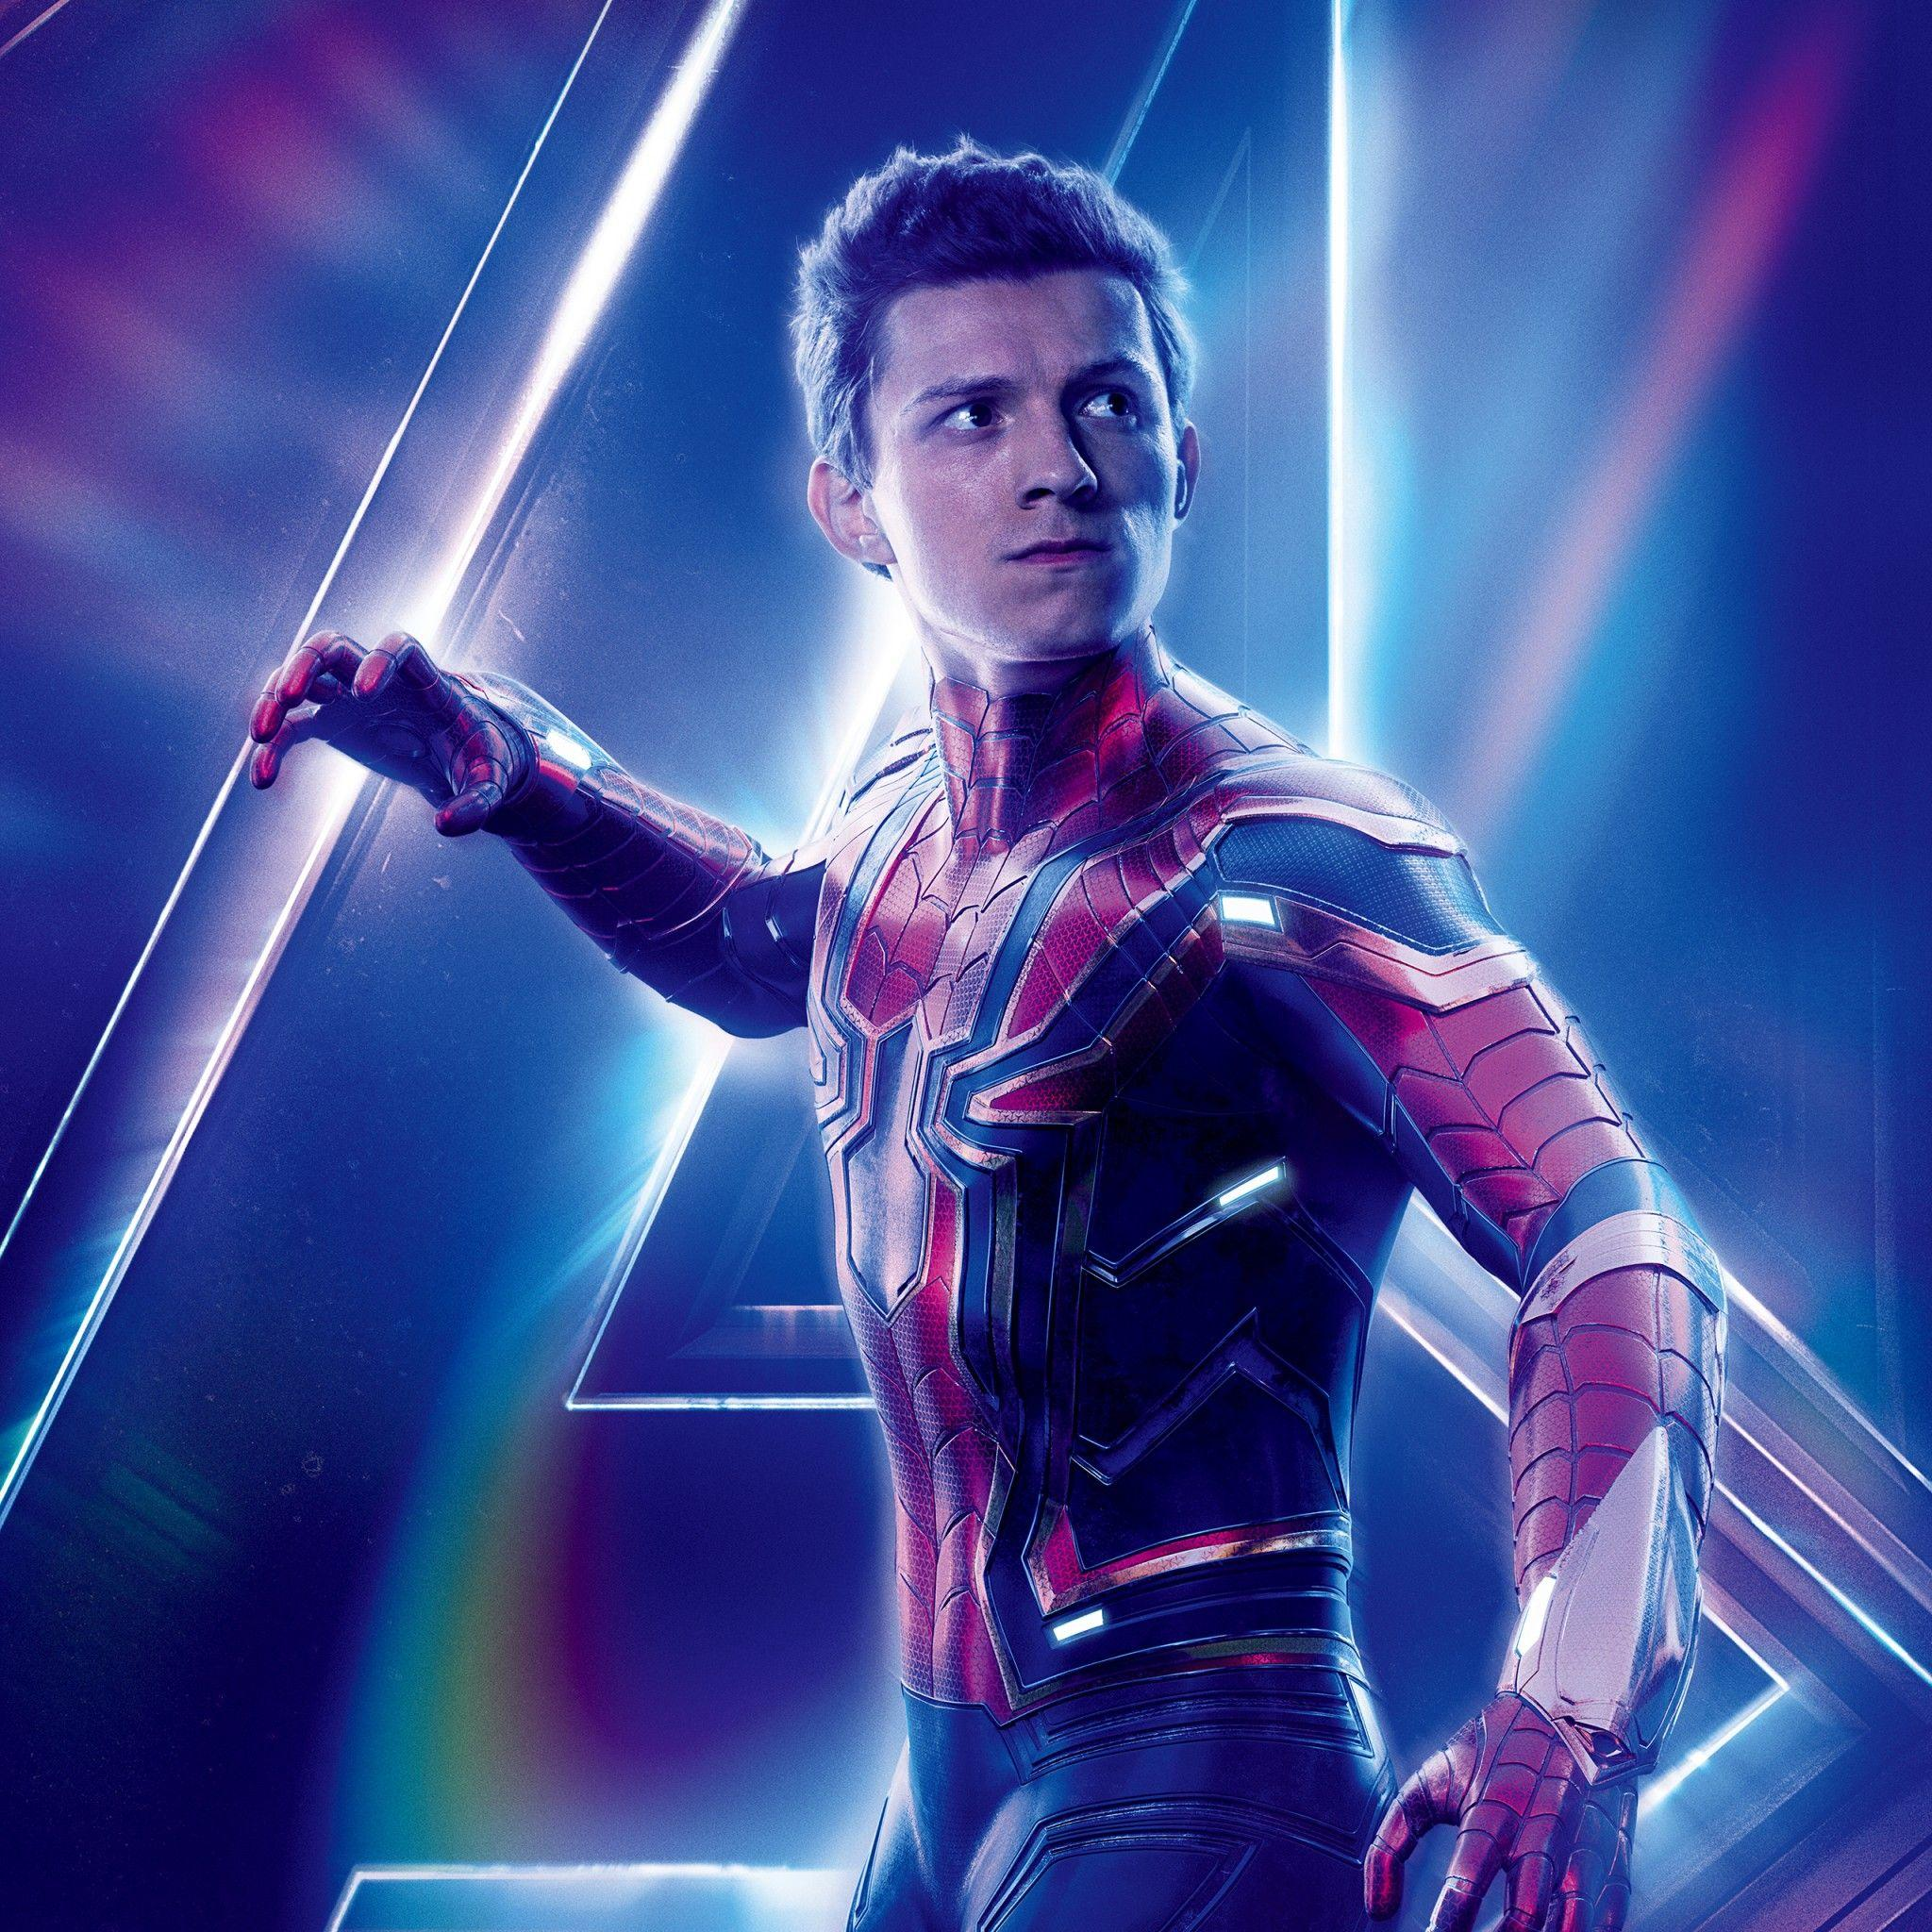 Tom Holland as Spider Man Avengers Infinity War 4K 8K Wallpapers